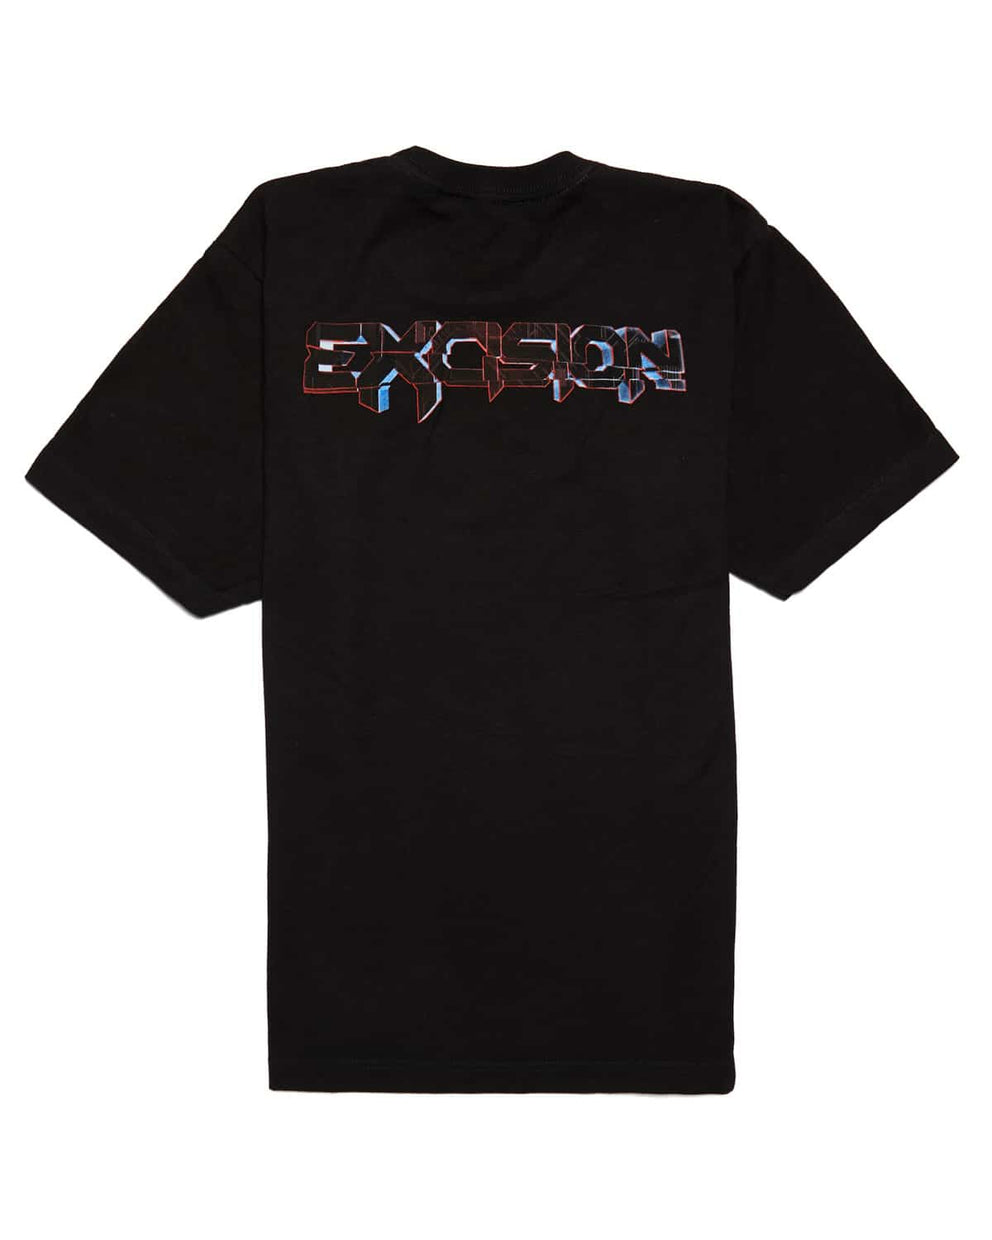 Excision 'Magnetite' Unisex T-Shirt - Black/Red